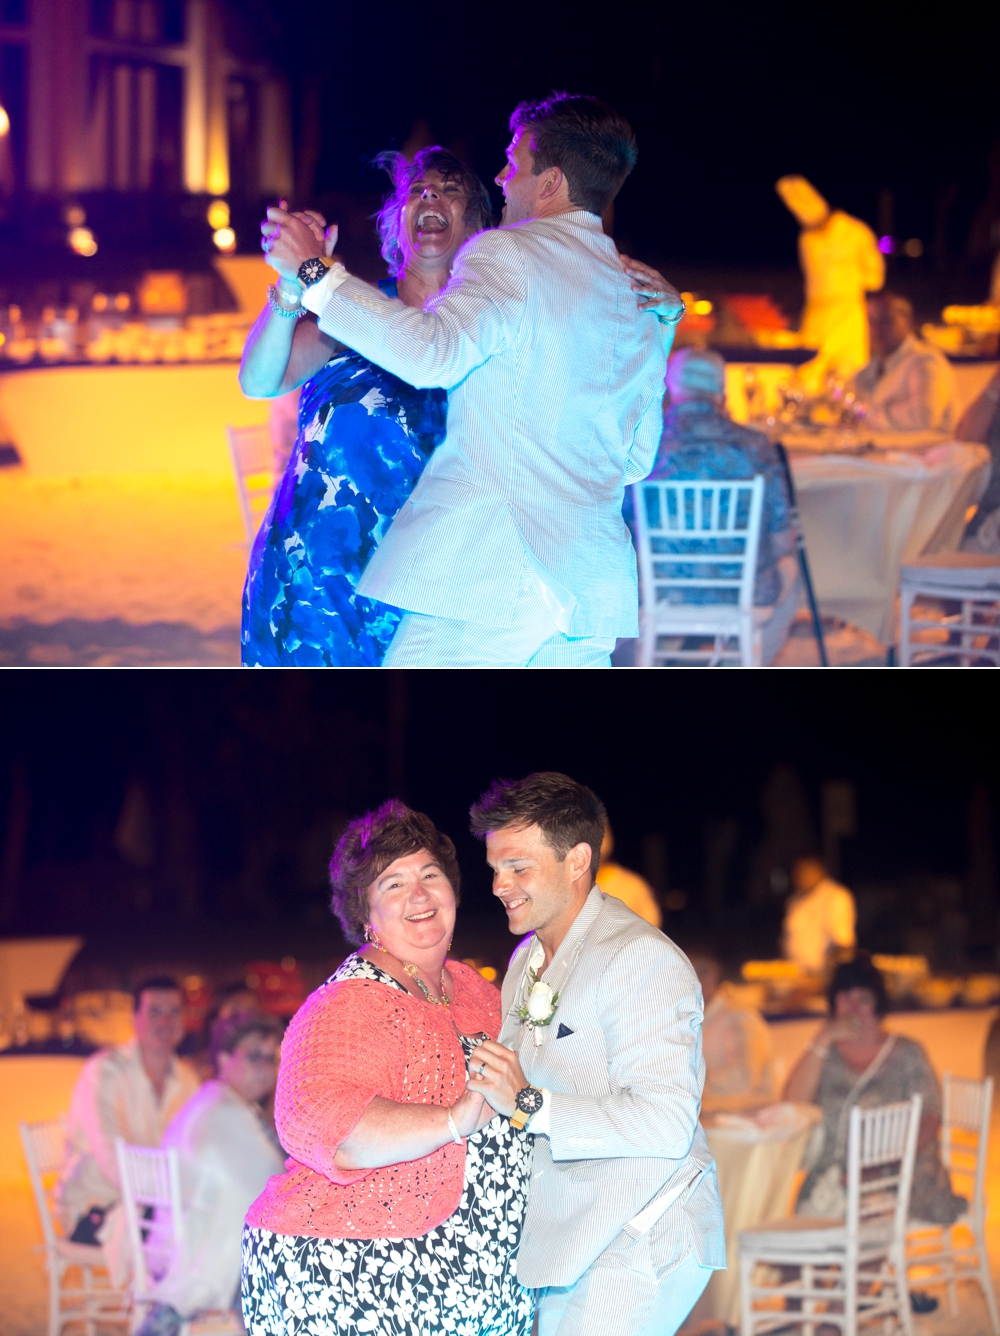 SomerbyJonesPhotography_IberostarGrandHotelParaiso_Mexico_Wedding_0045.jpg